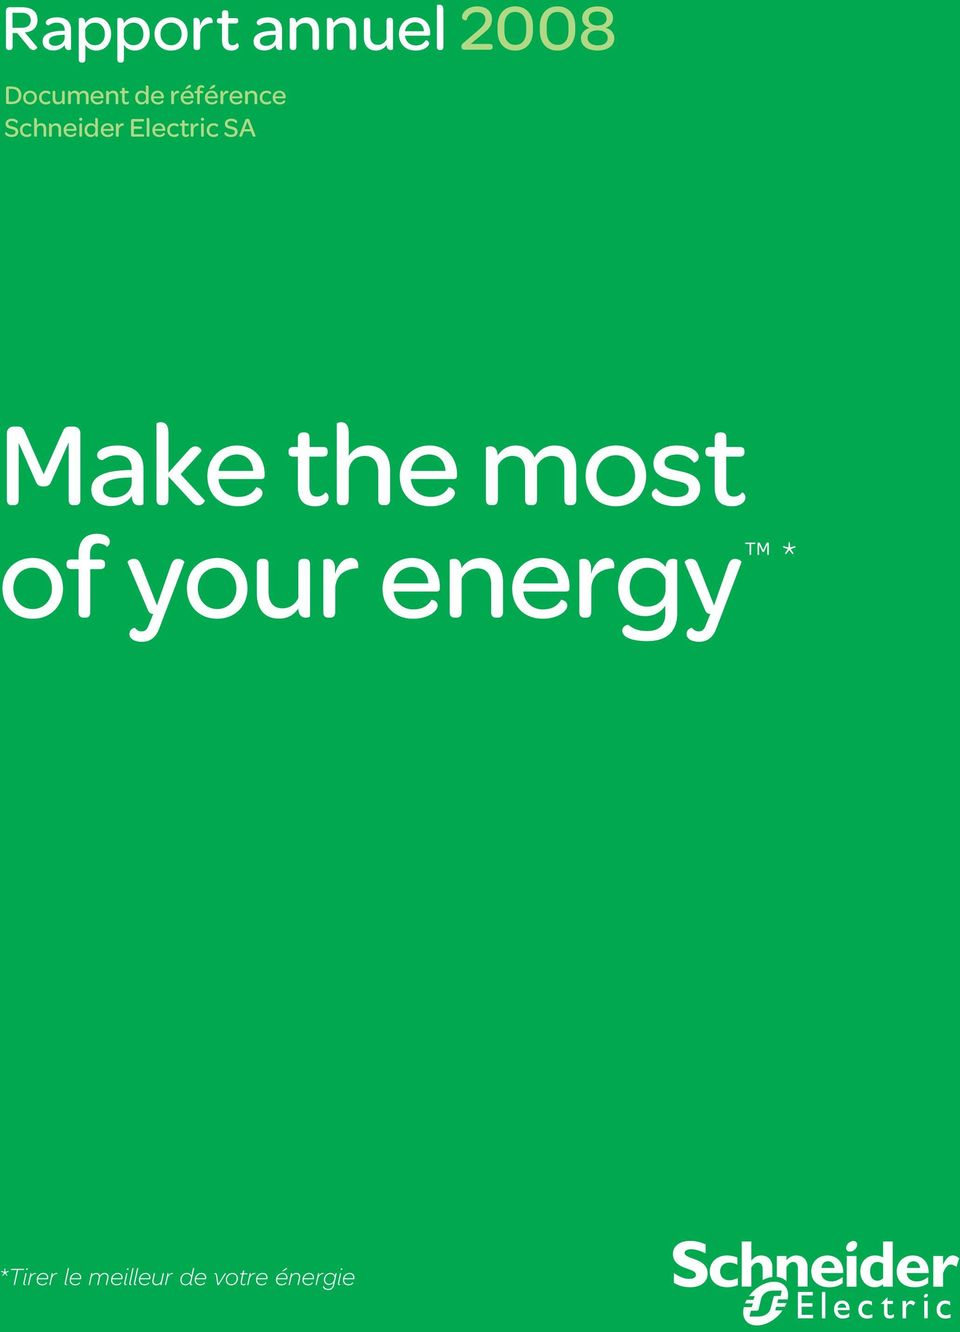 Make the most of your energy *